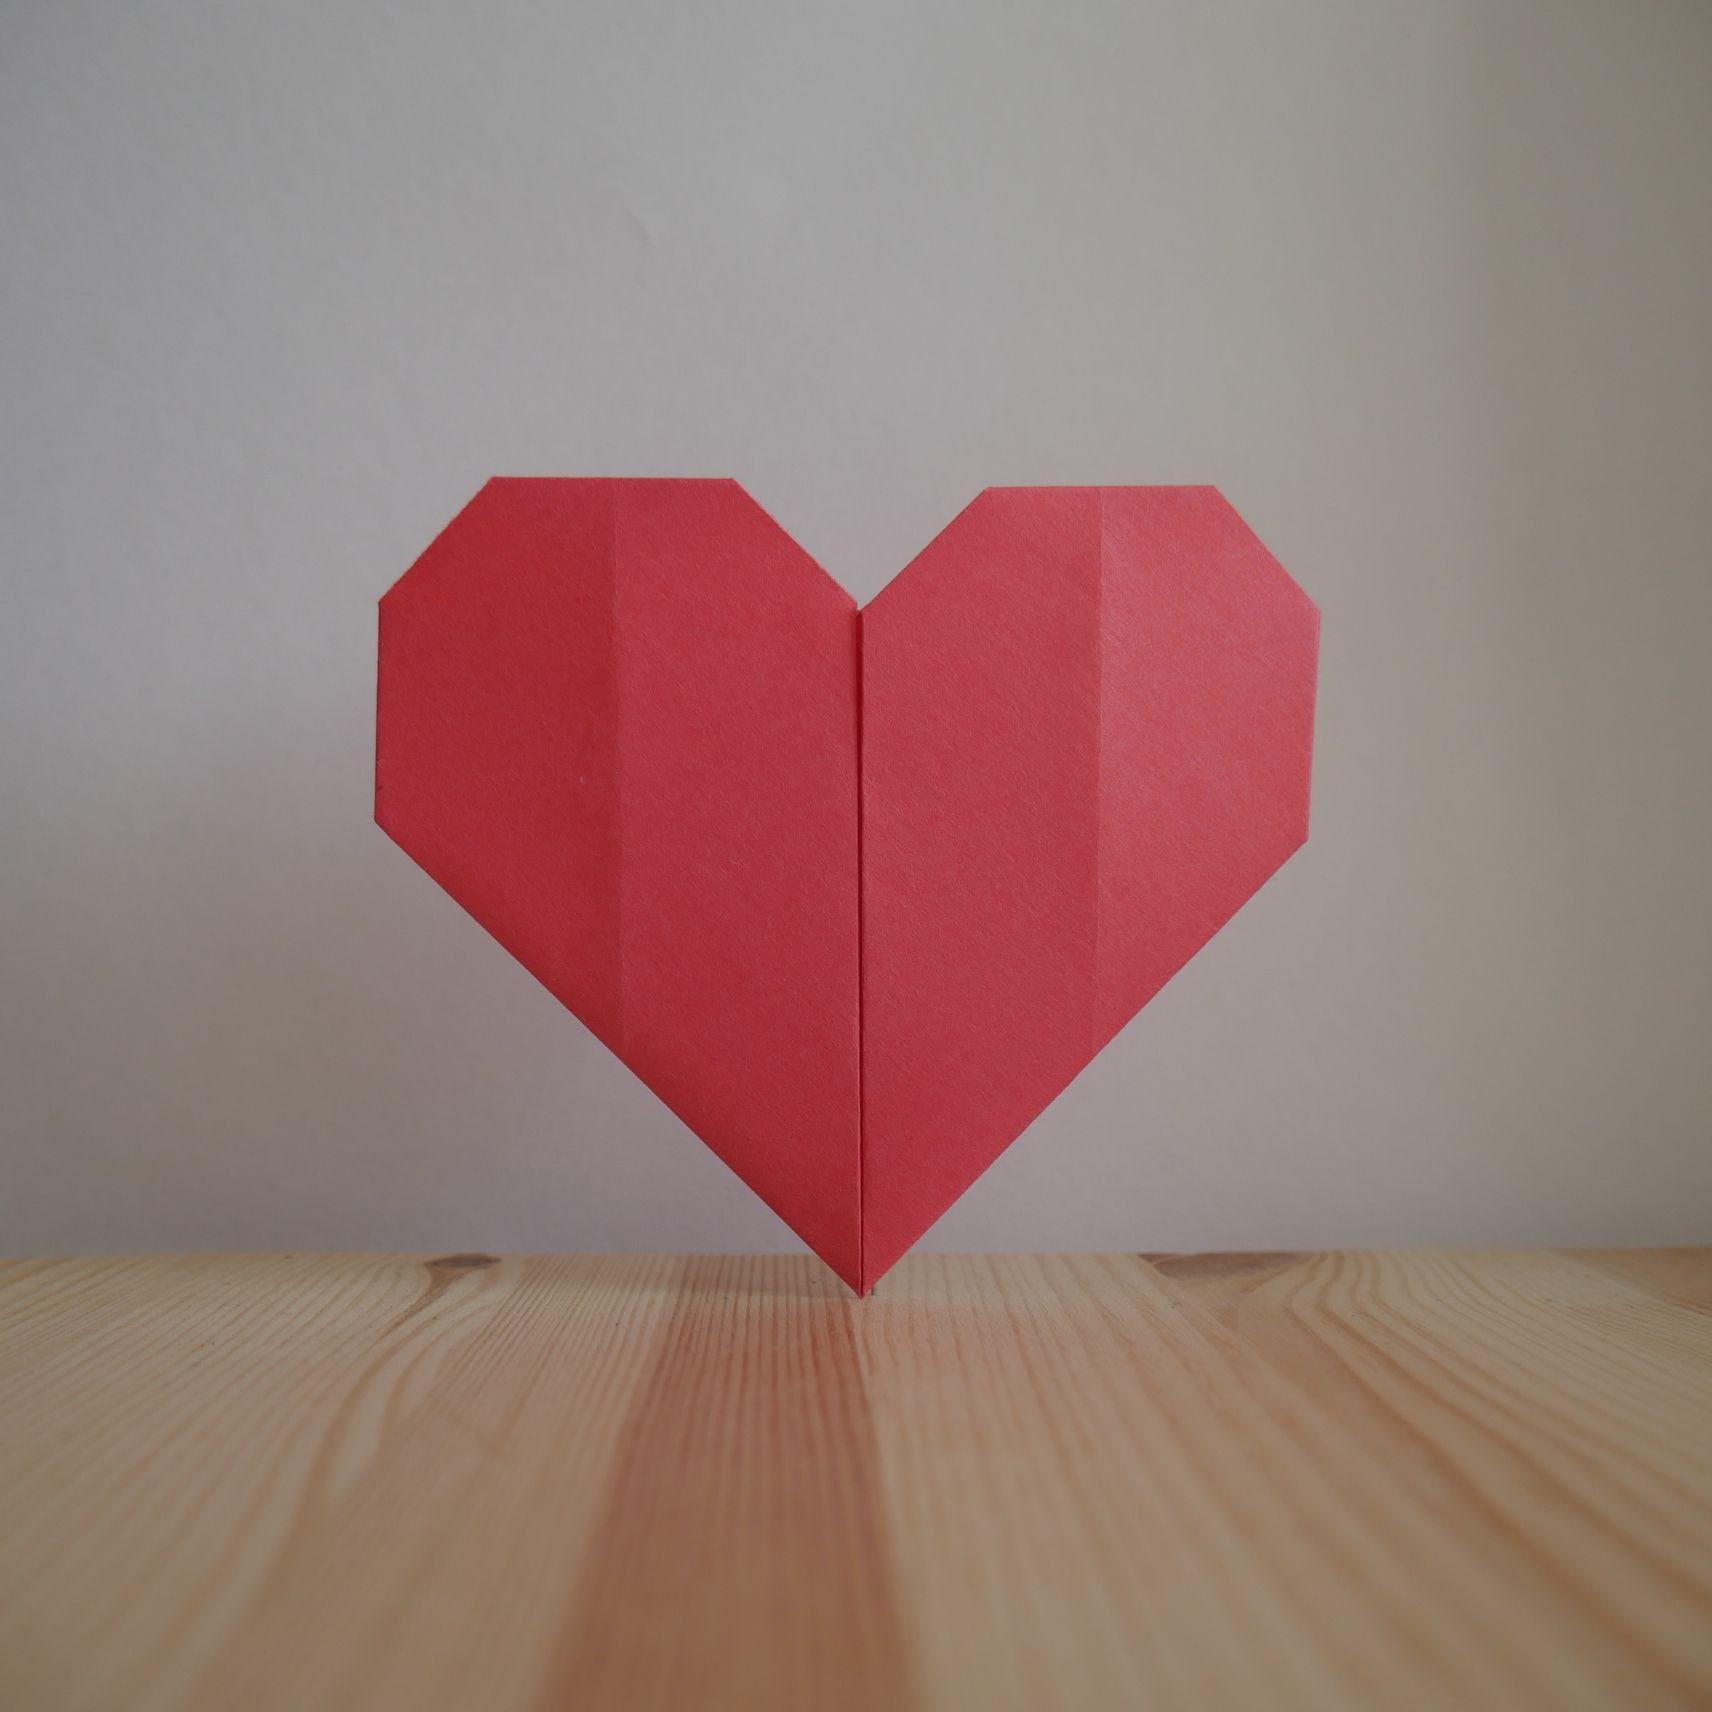 Origami How To Make A Heart Out Of Paper Video Lesson Origami Video Tutorial In Thi Paper Hearts Origami Easy Origami Heart Origami Heart Instructions